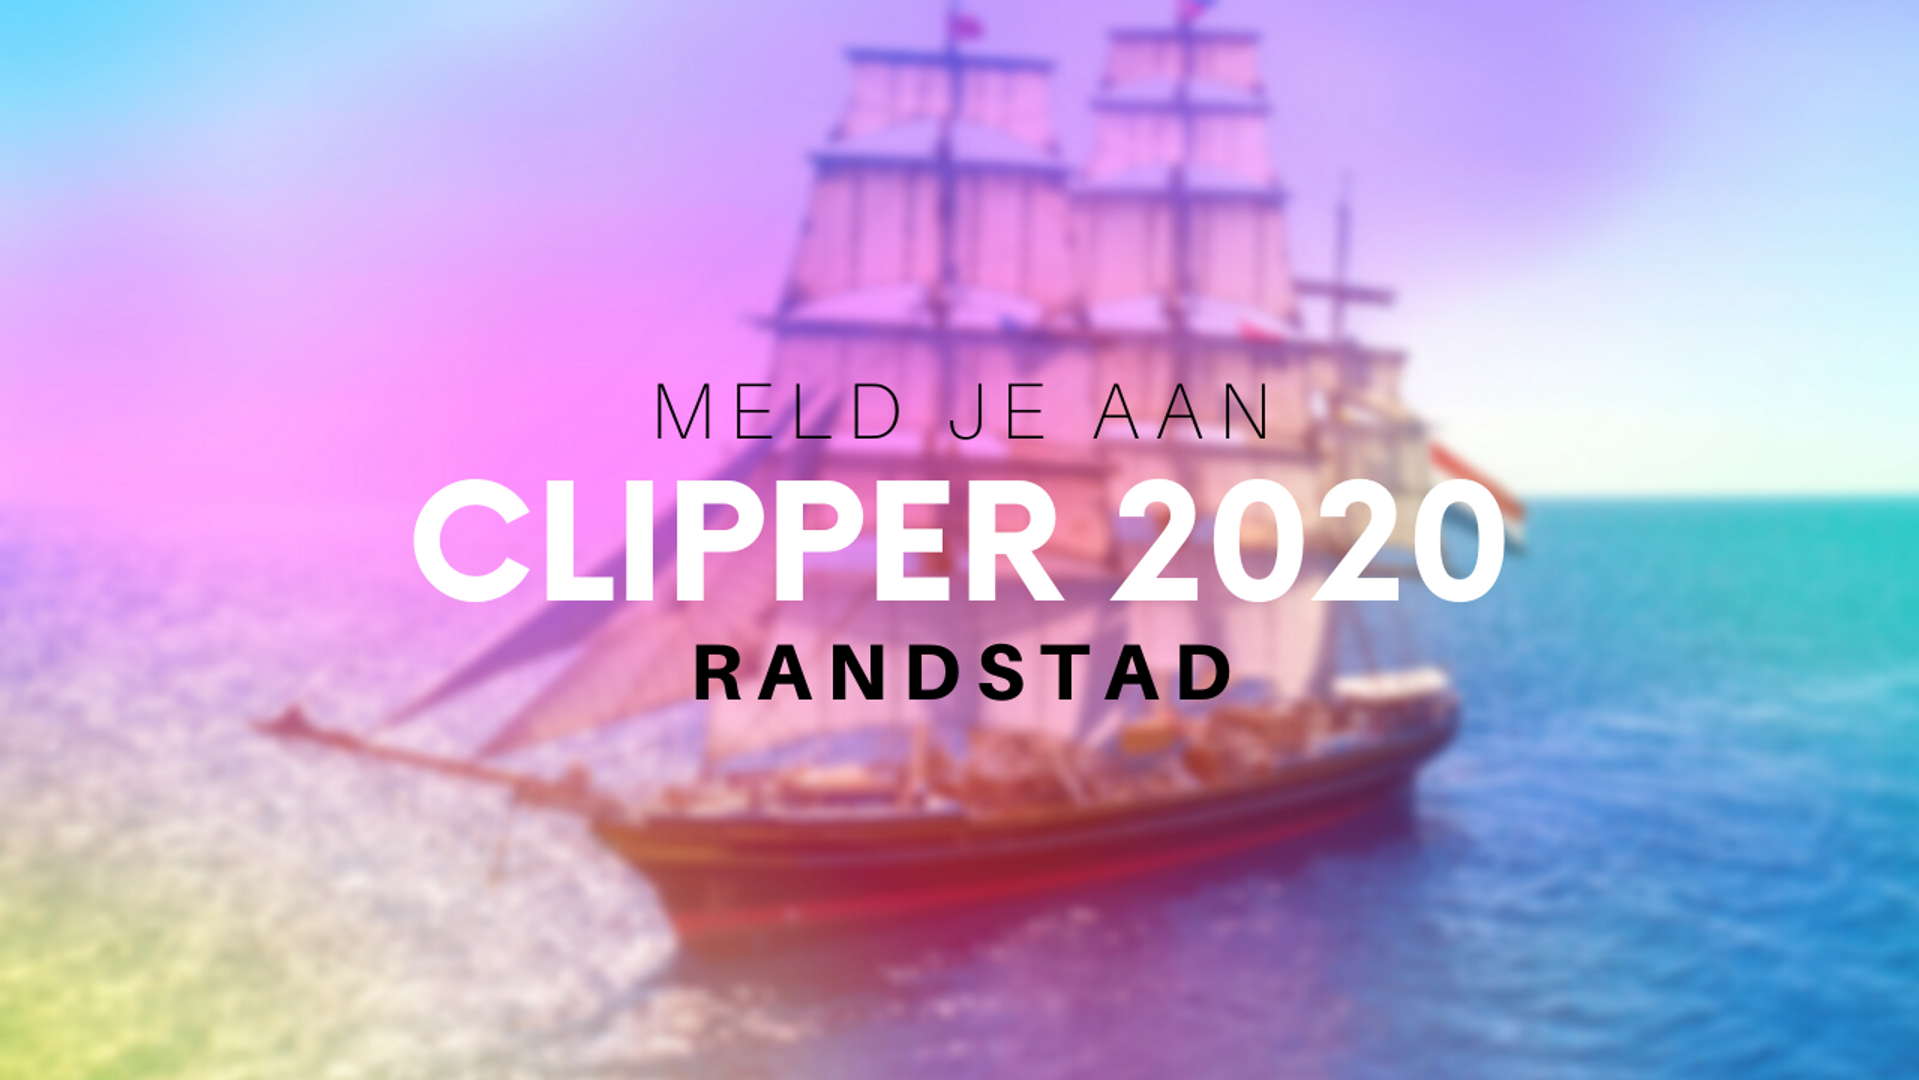 CLIPPER 2020 door Randstad